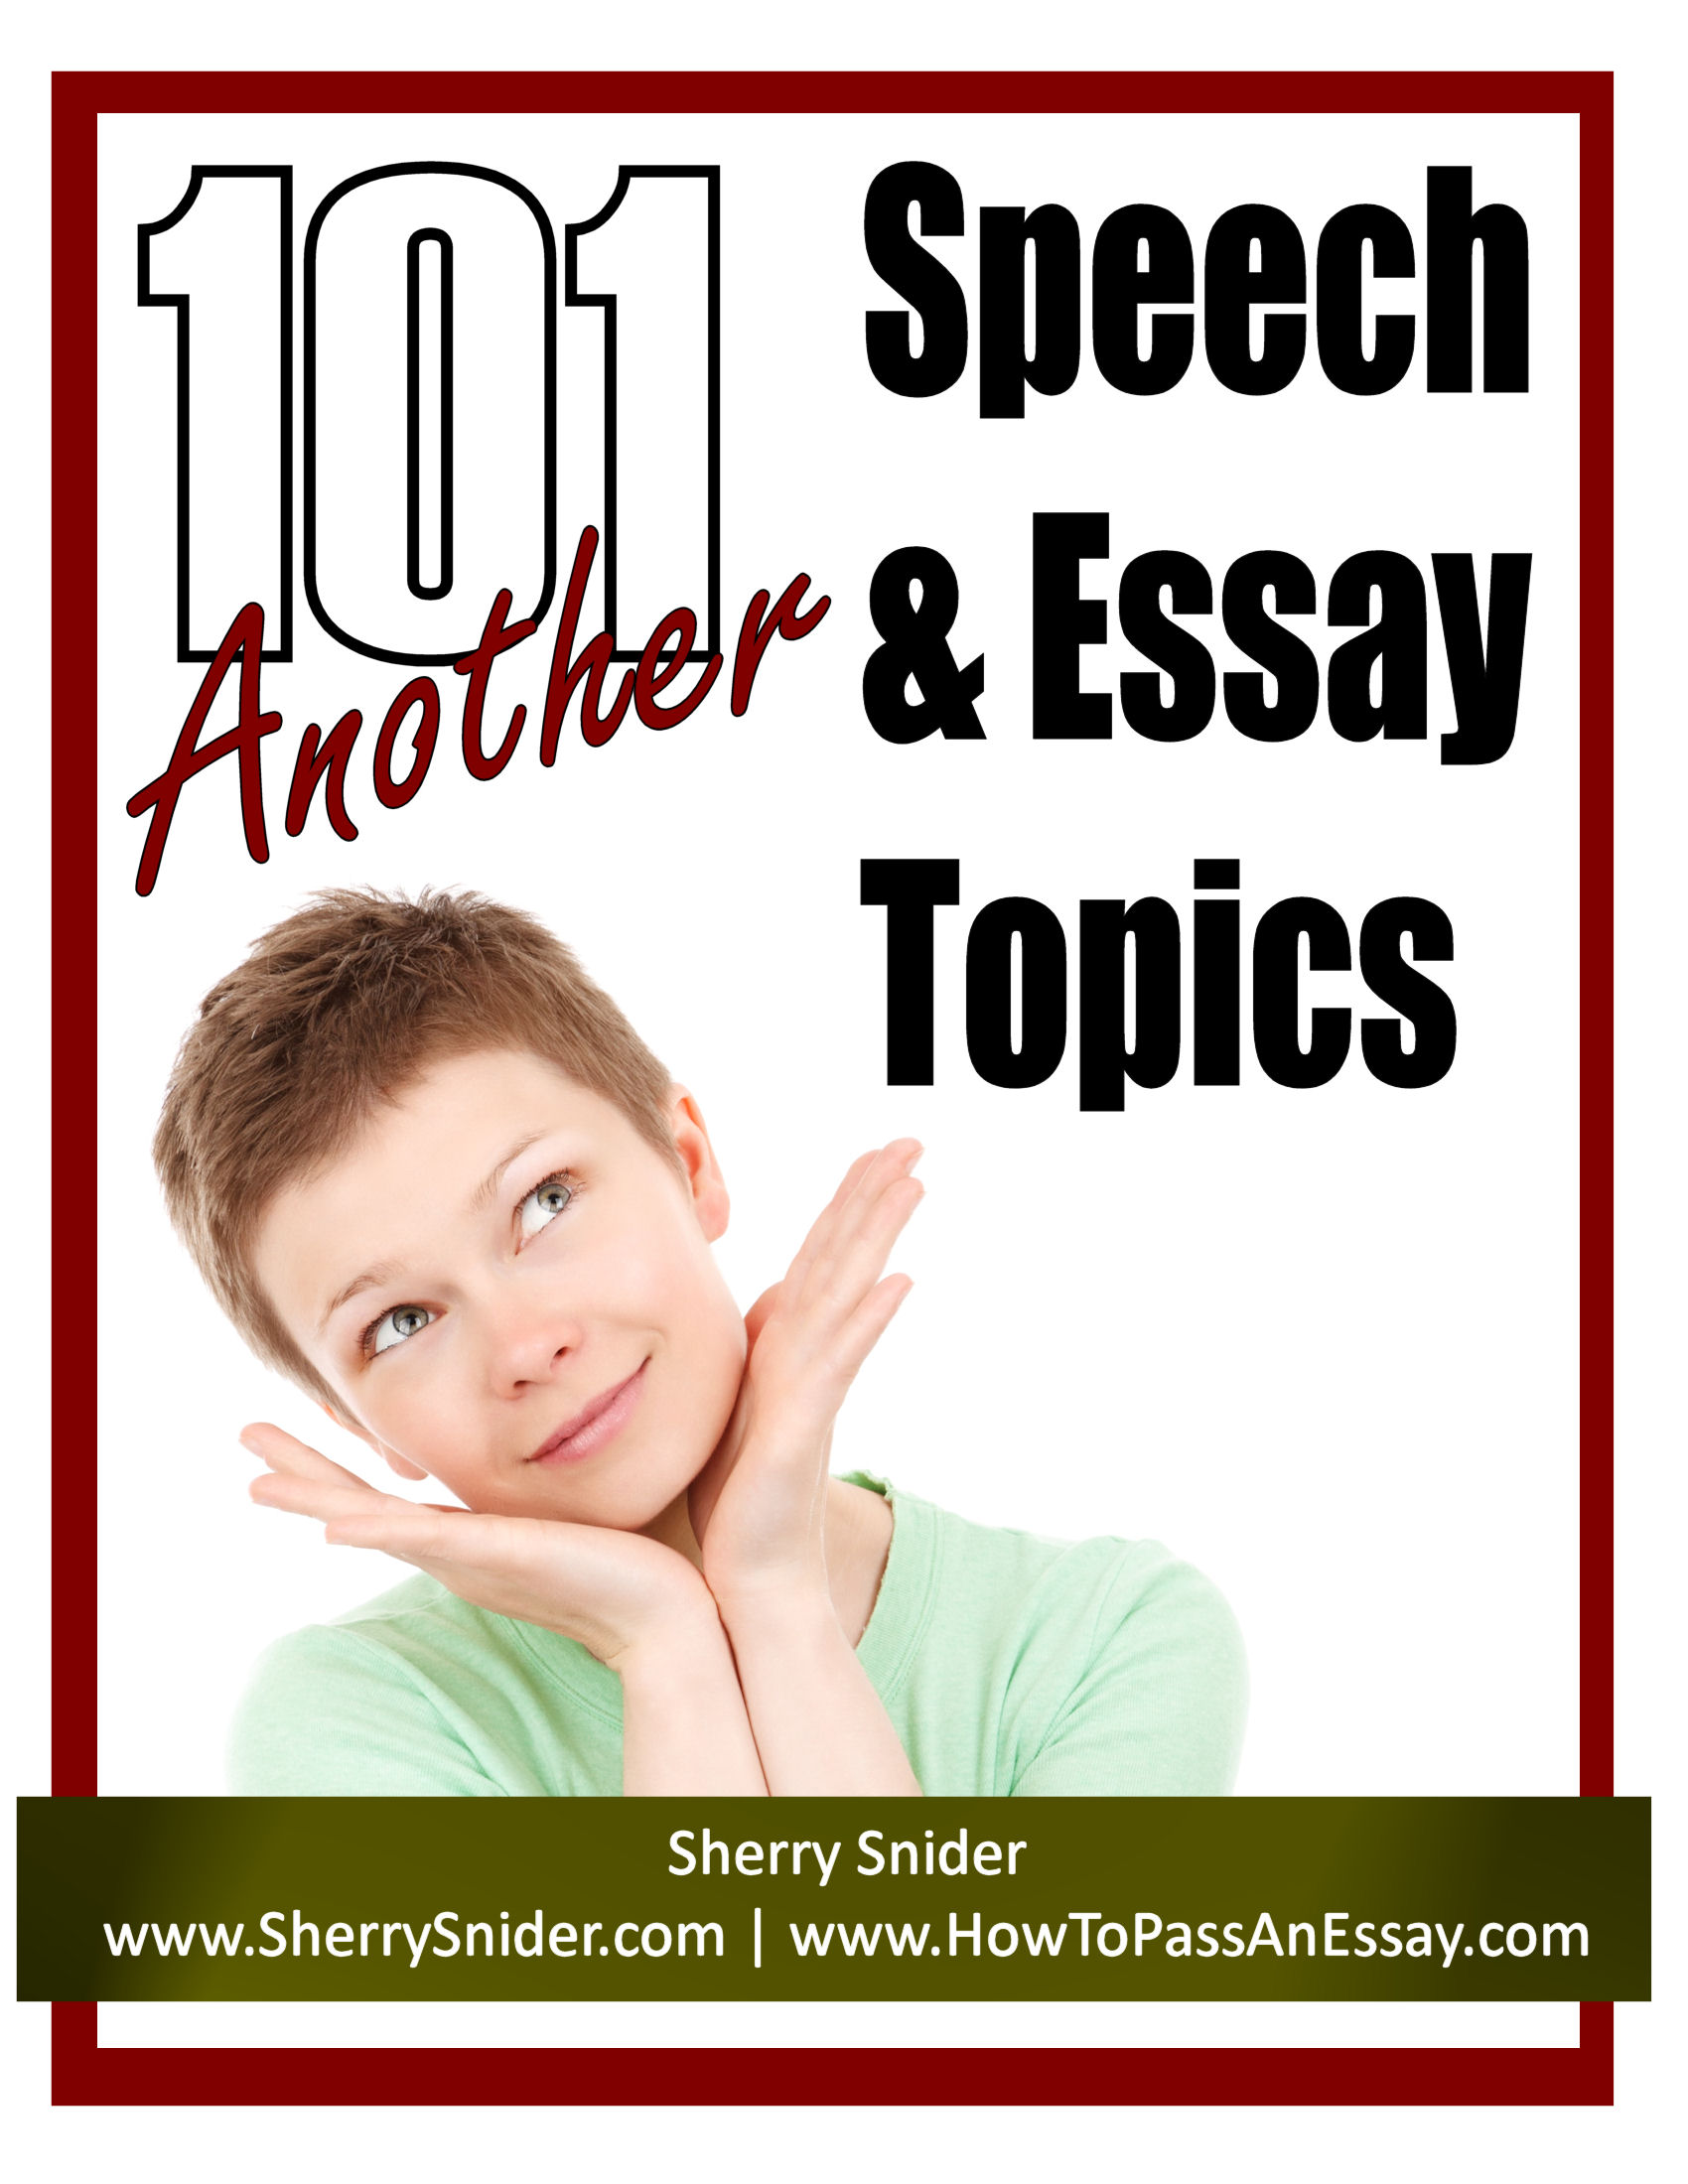 english speech essay topics Interesting persuasive speech topics: a list for high school & college may 14, 2014 by jessicaheichel if you have been assigned a persuasive speech, lucky you.